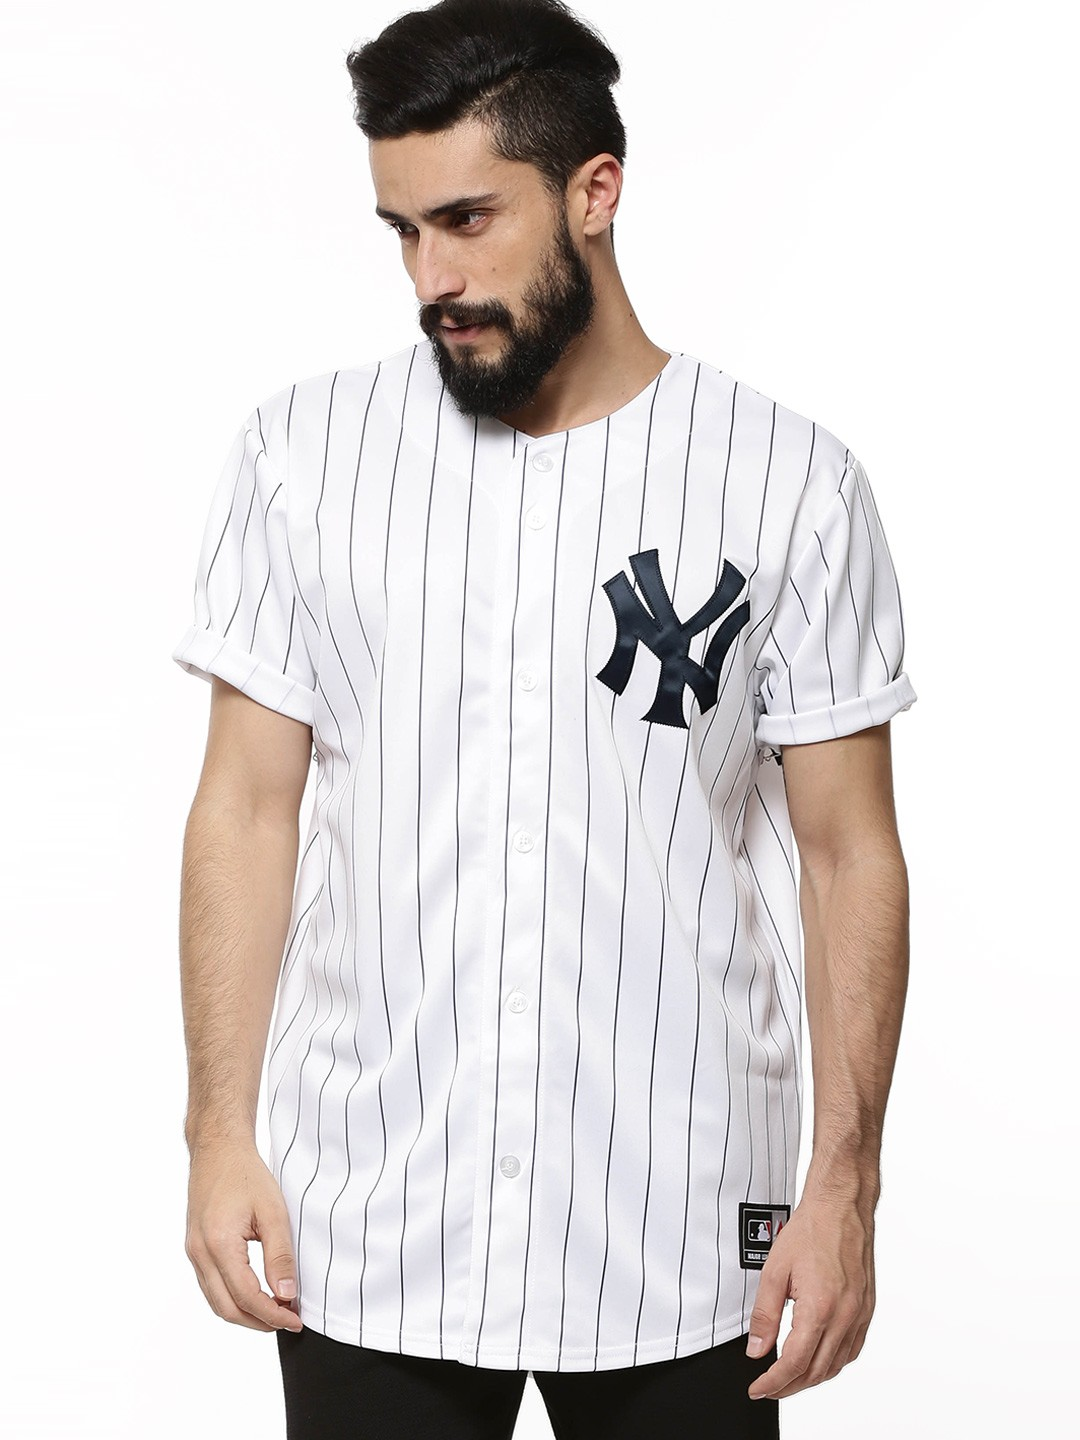 Buy majestic official licensed ny yankees baseball jersey for Baseball jersey t shirt custom